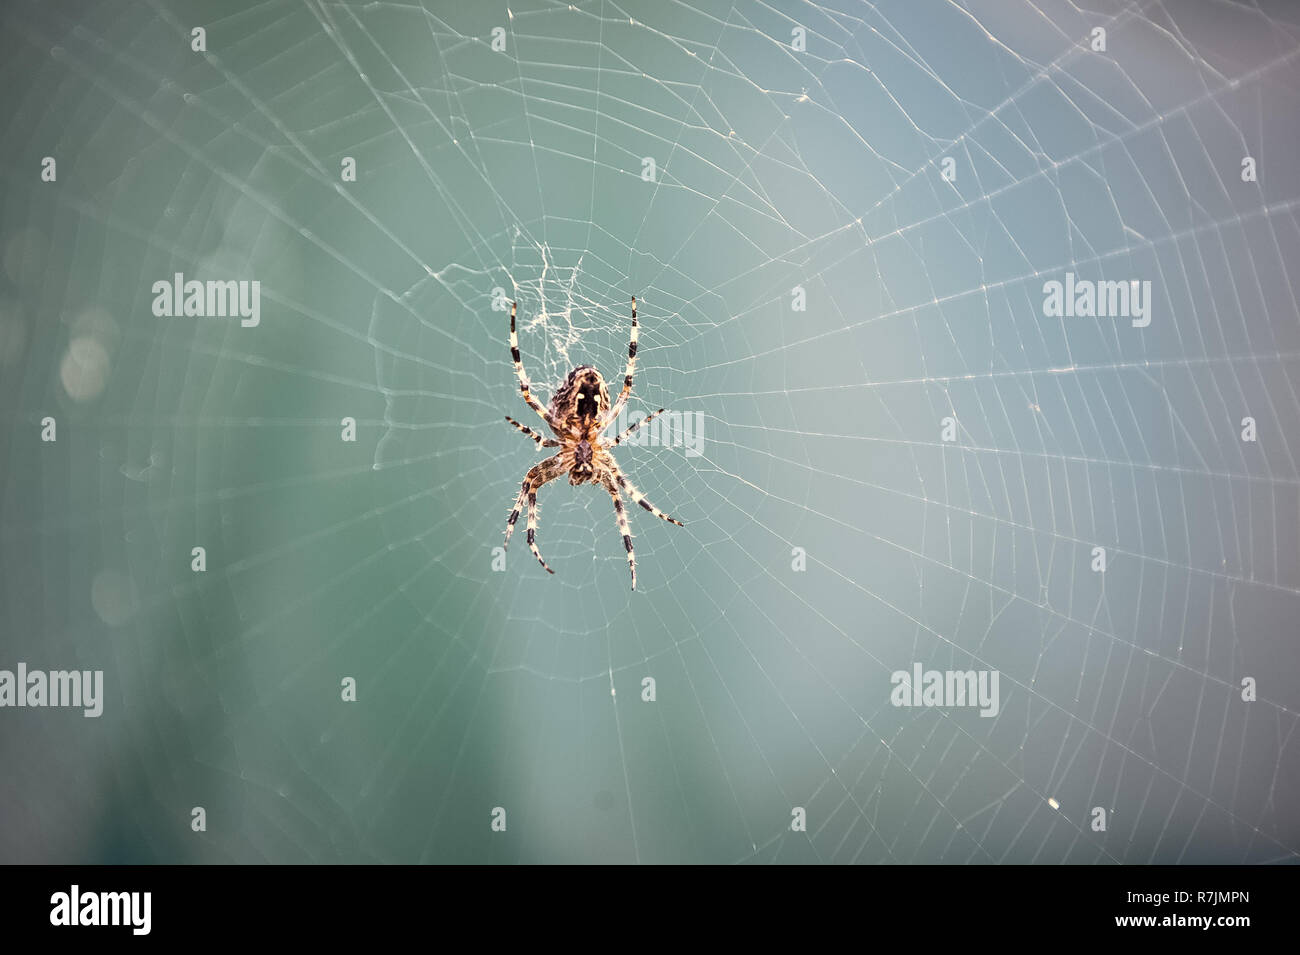 Spider spinning web in nature on blurred blue background. Arachnid, insect, animal. Web construction, design, geometry - Stock Image